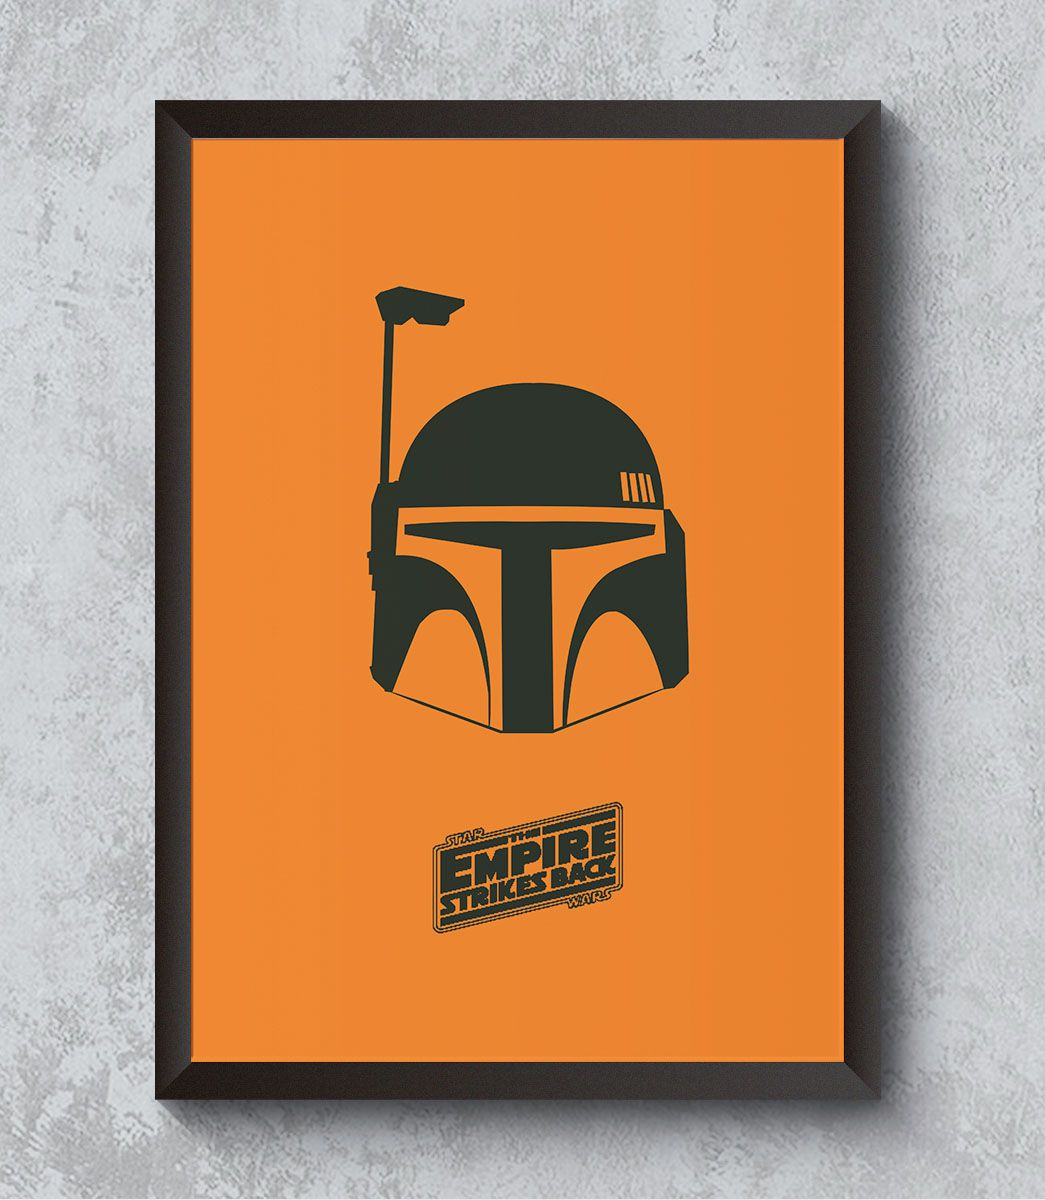 Decorativo - Star Wars Empire SB